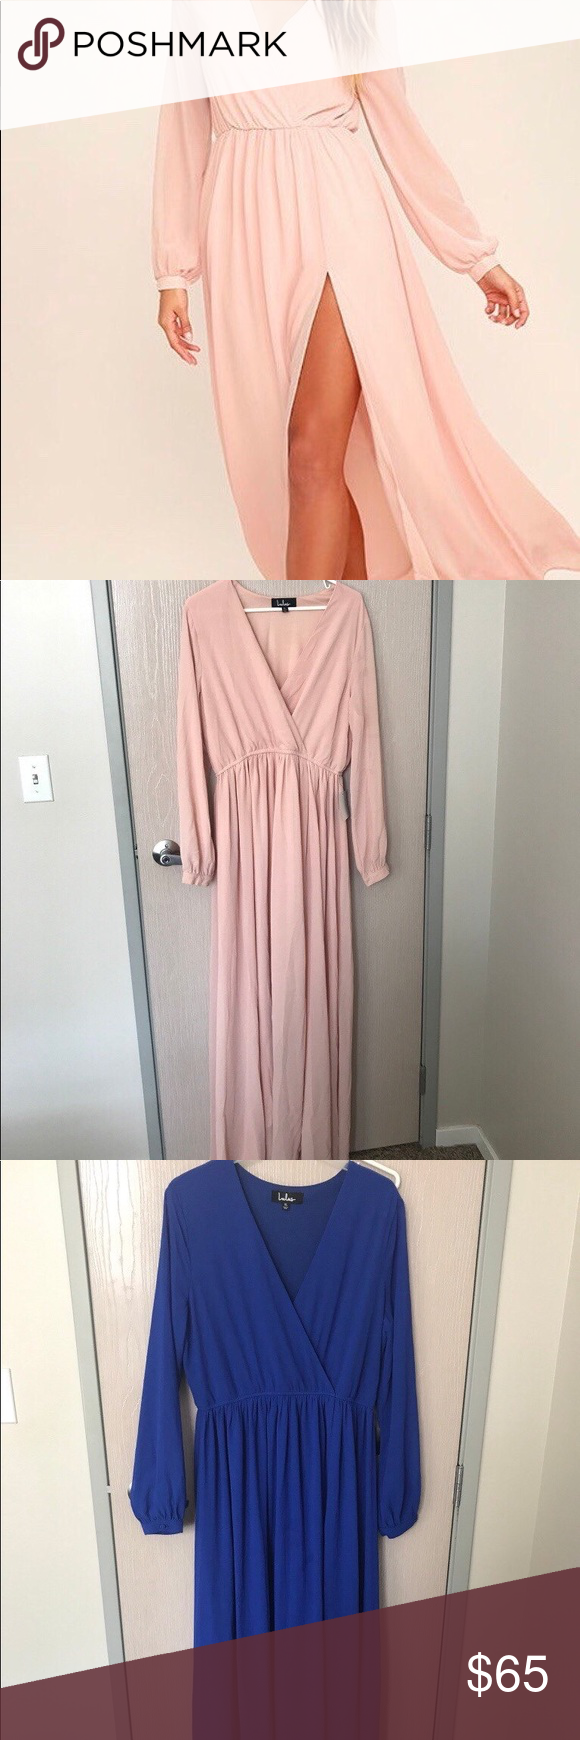 Lulus wedding guest dresses   long sleeve deep v dress one pink one blue This dress is perfect